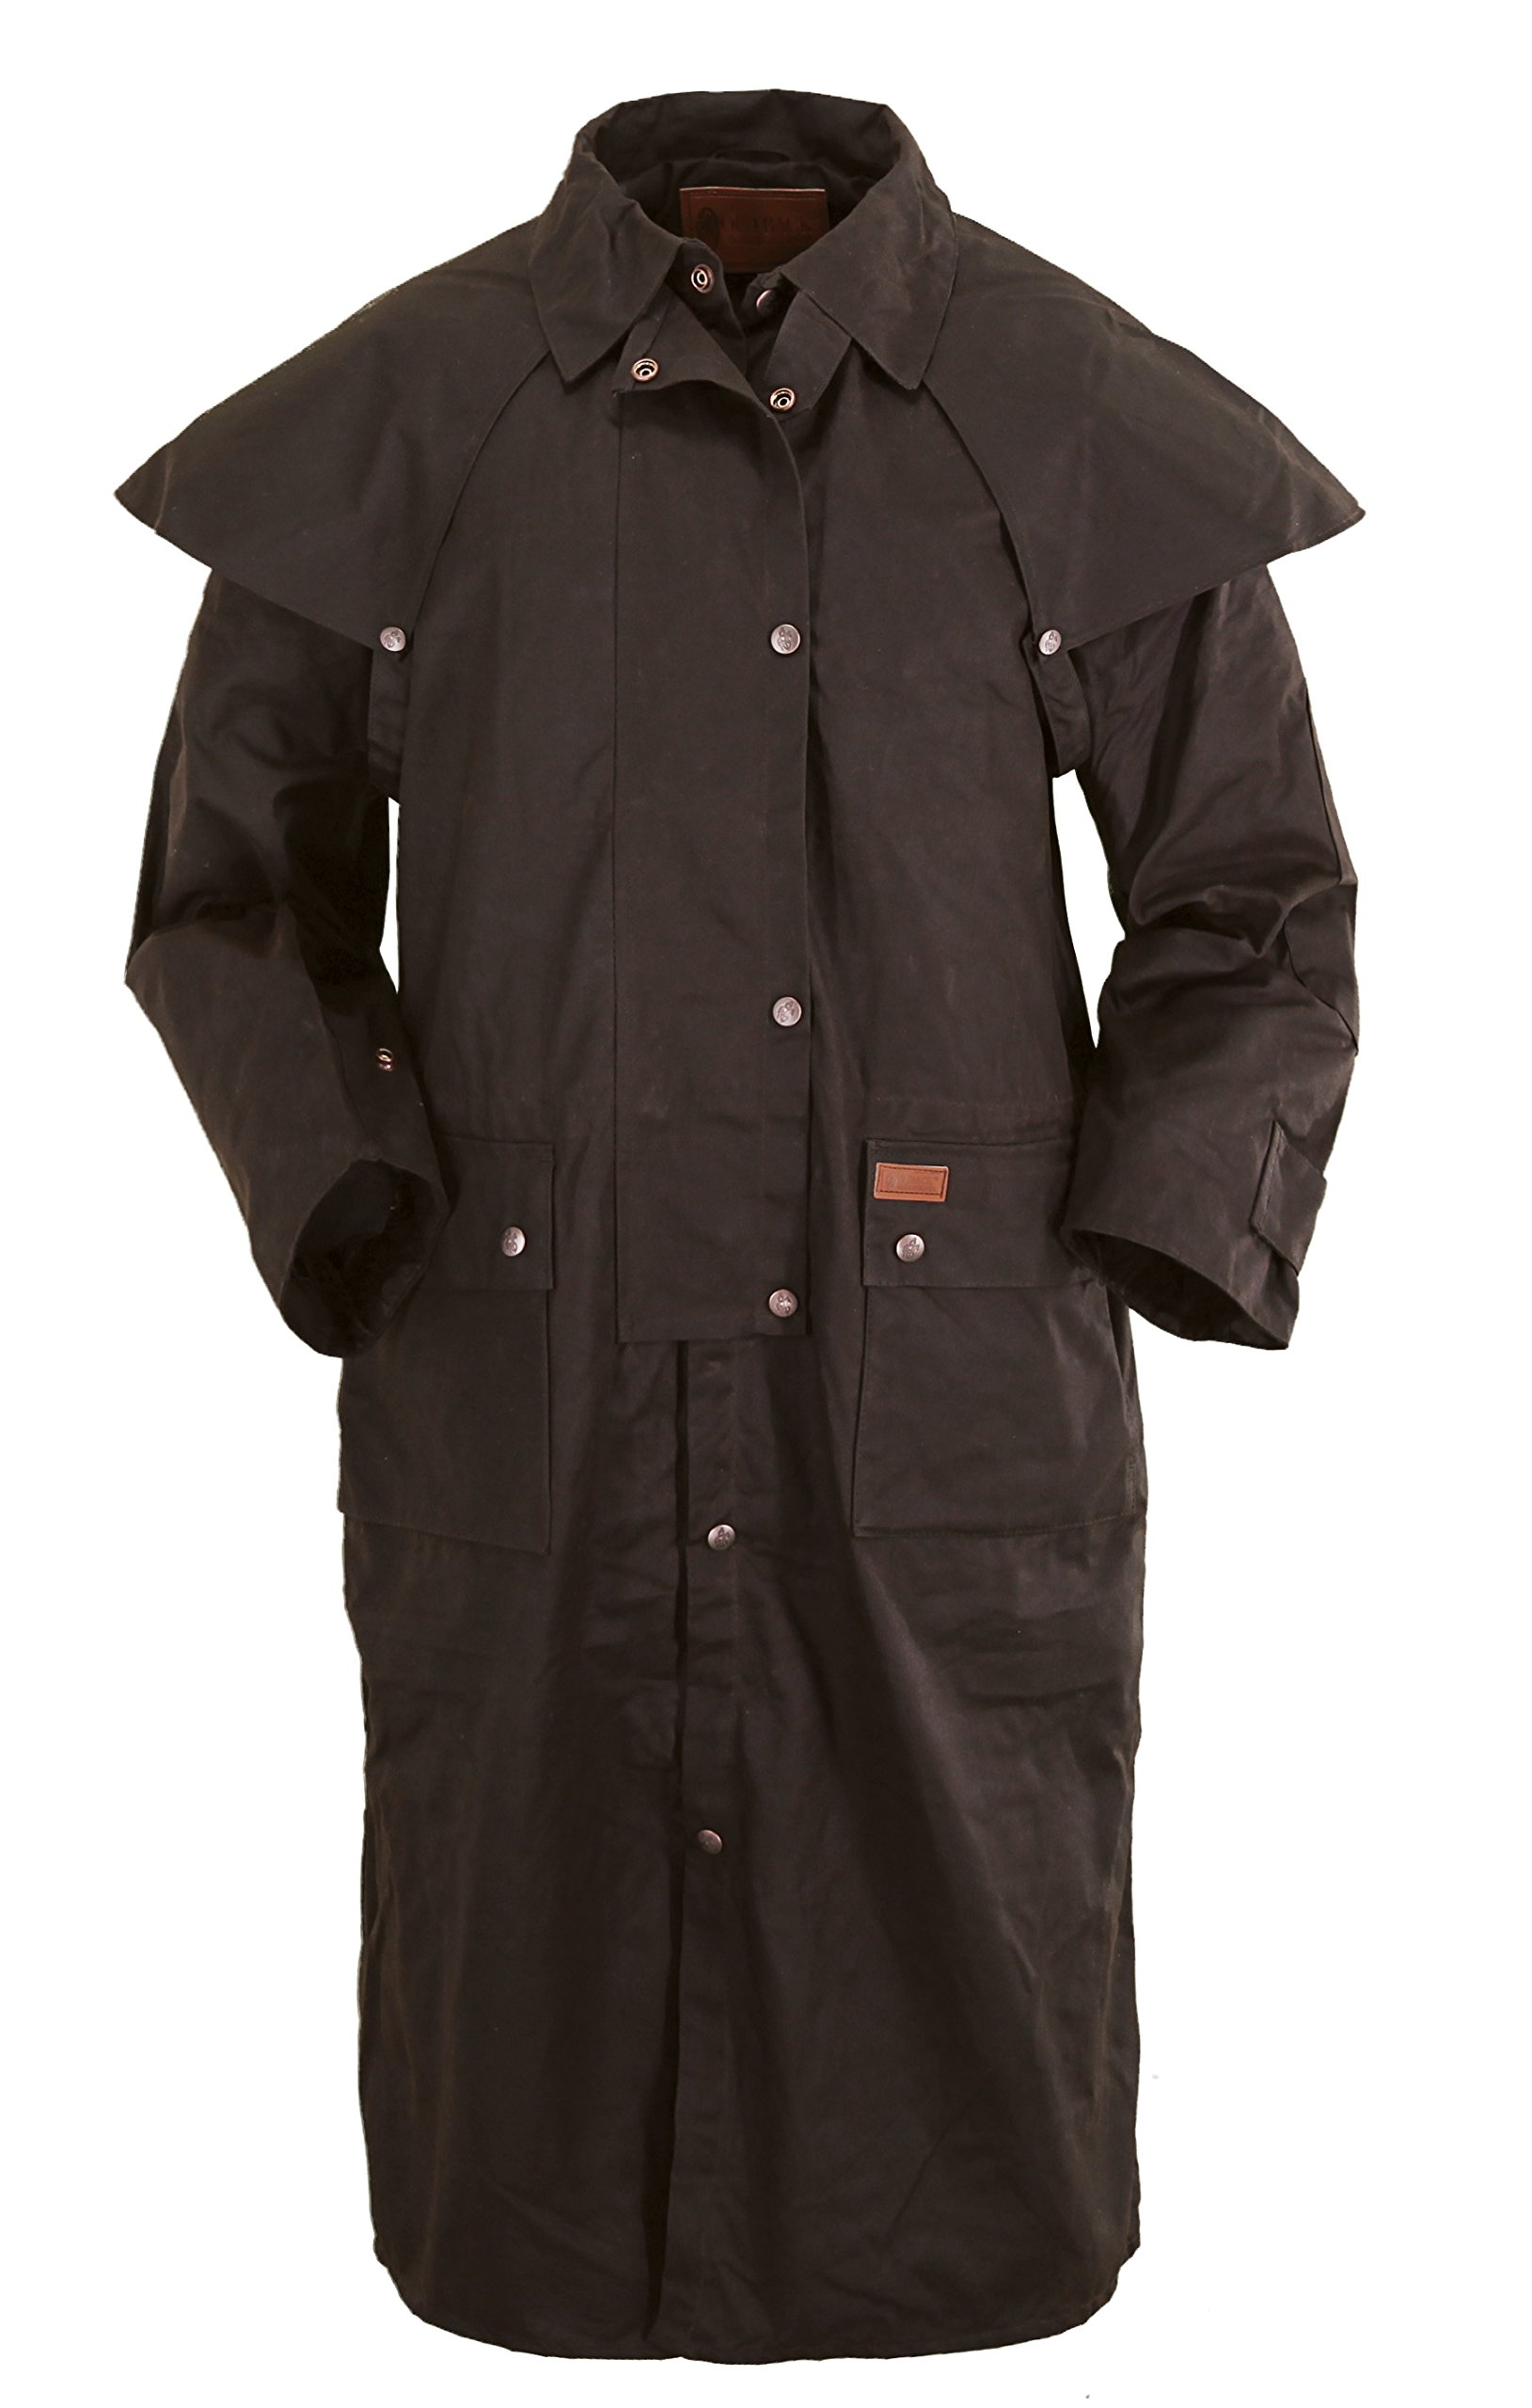 Outback Trading Co. Low Rider Duster Mens Coat Brown 100% Cotton Oilskin 3XL